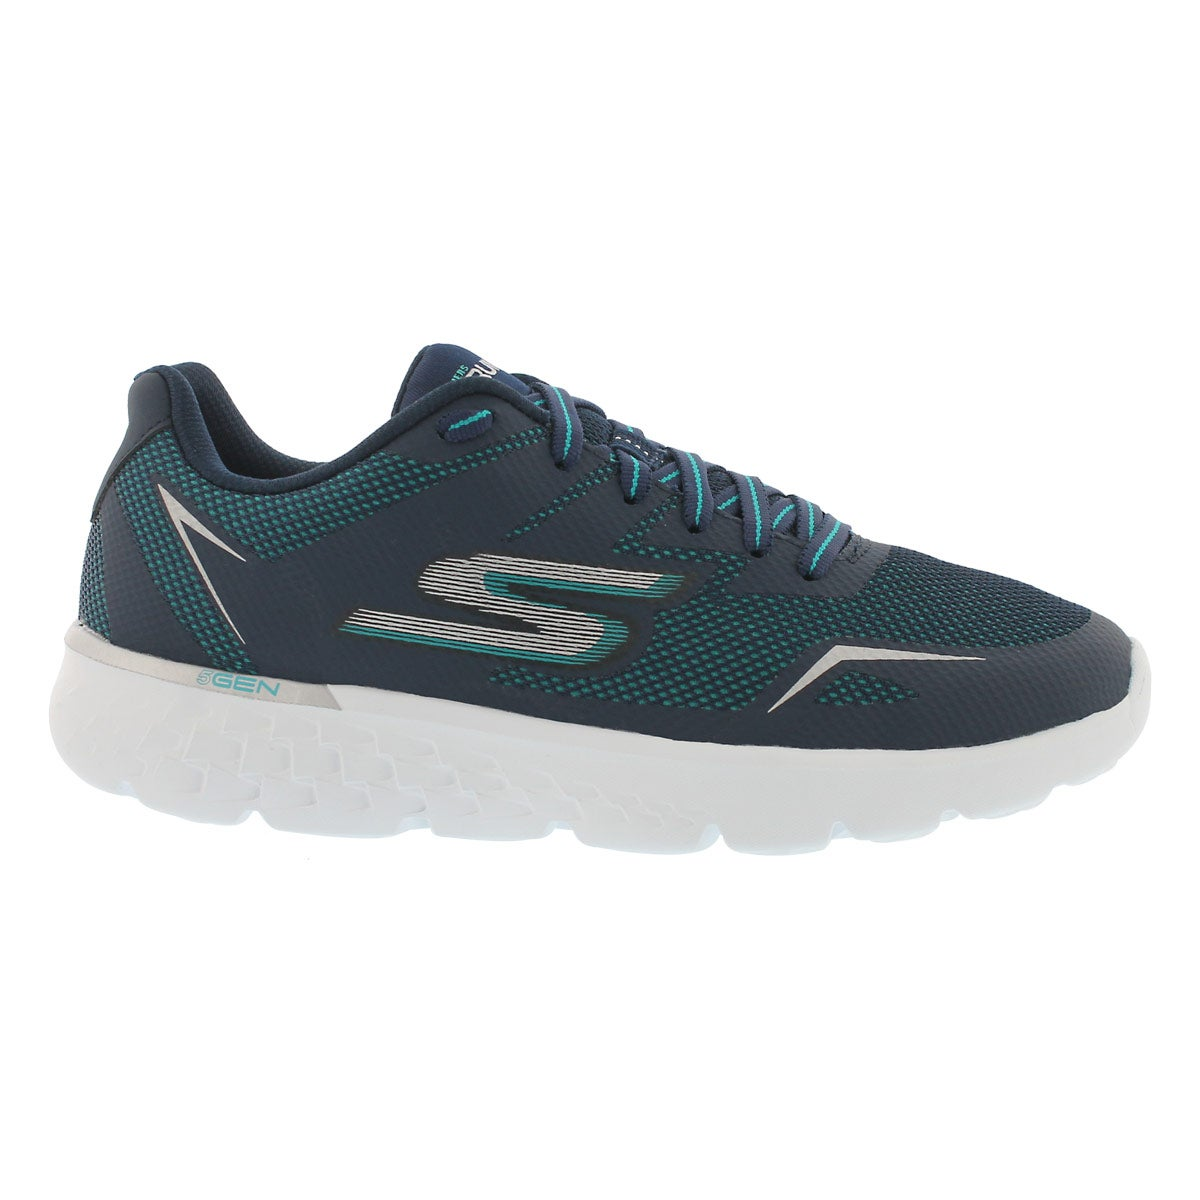 Lds GO Run 400 nvy/aqua lace up sneaker